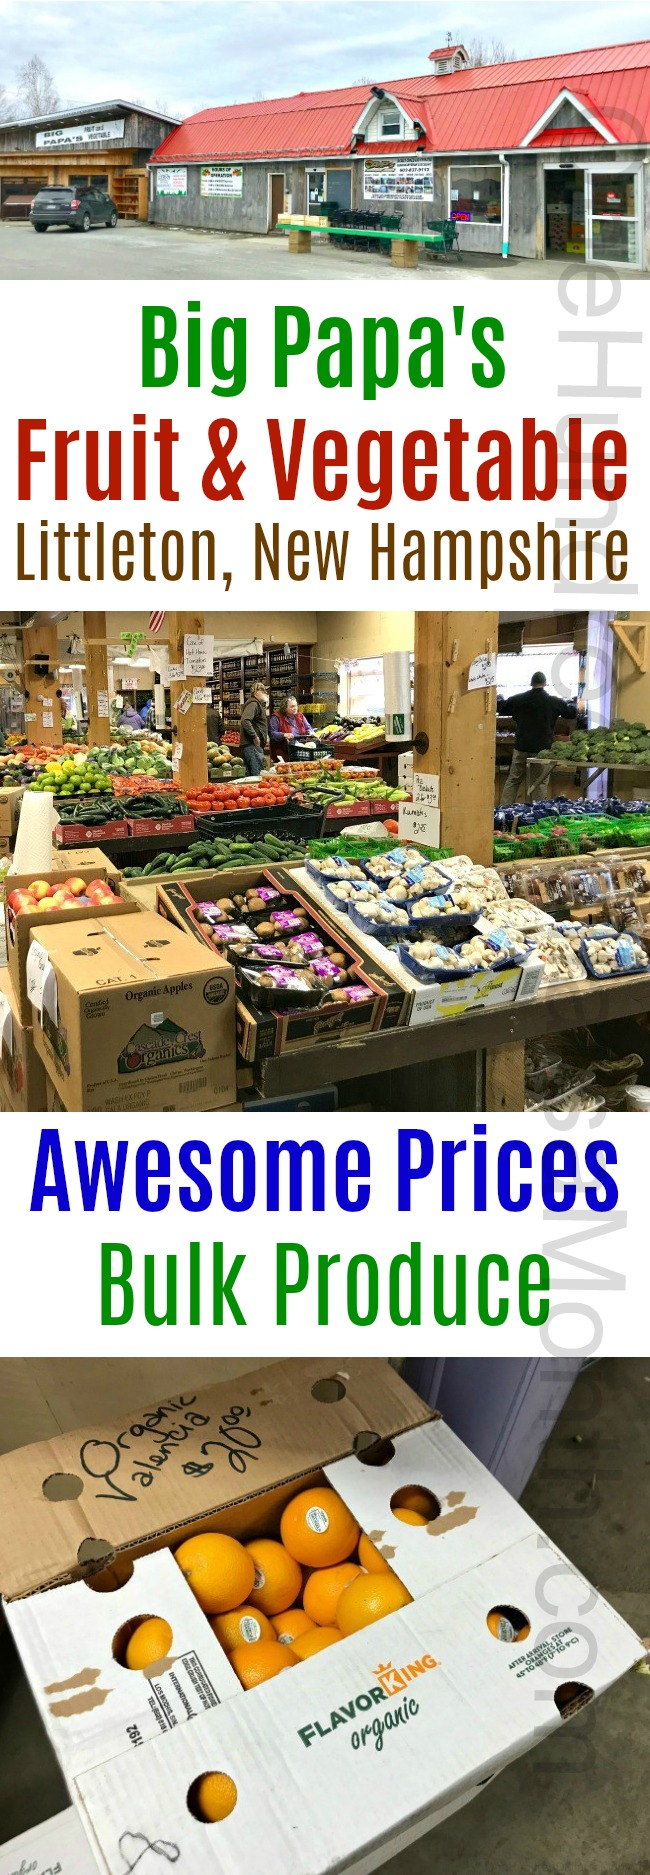 Big Papa's Fruit & Vegetable – Littleton, New Hampshire